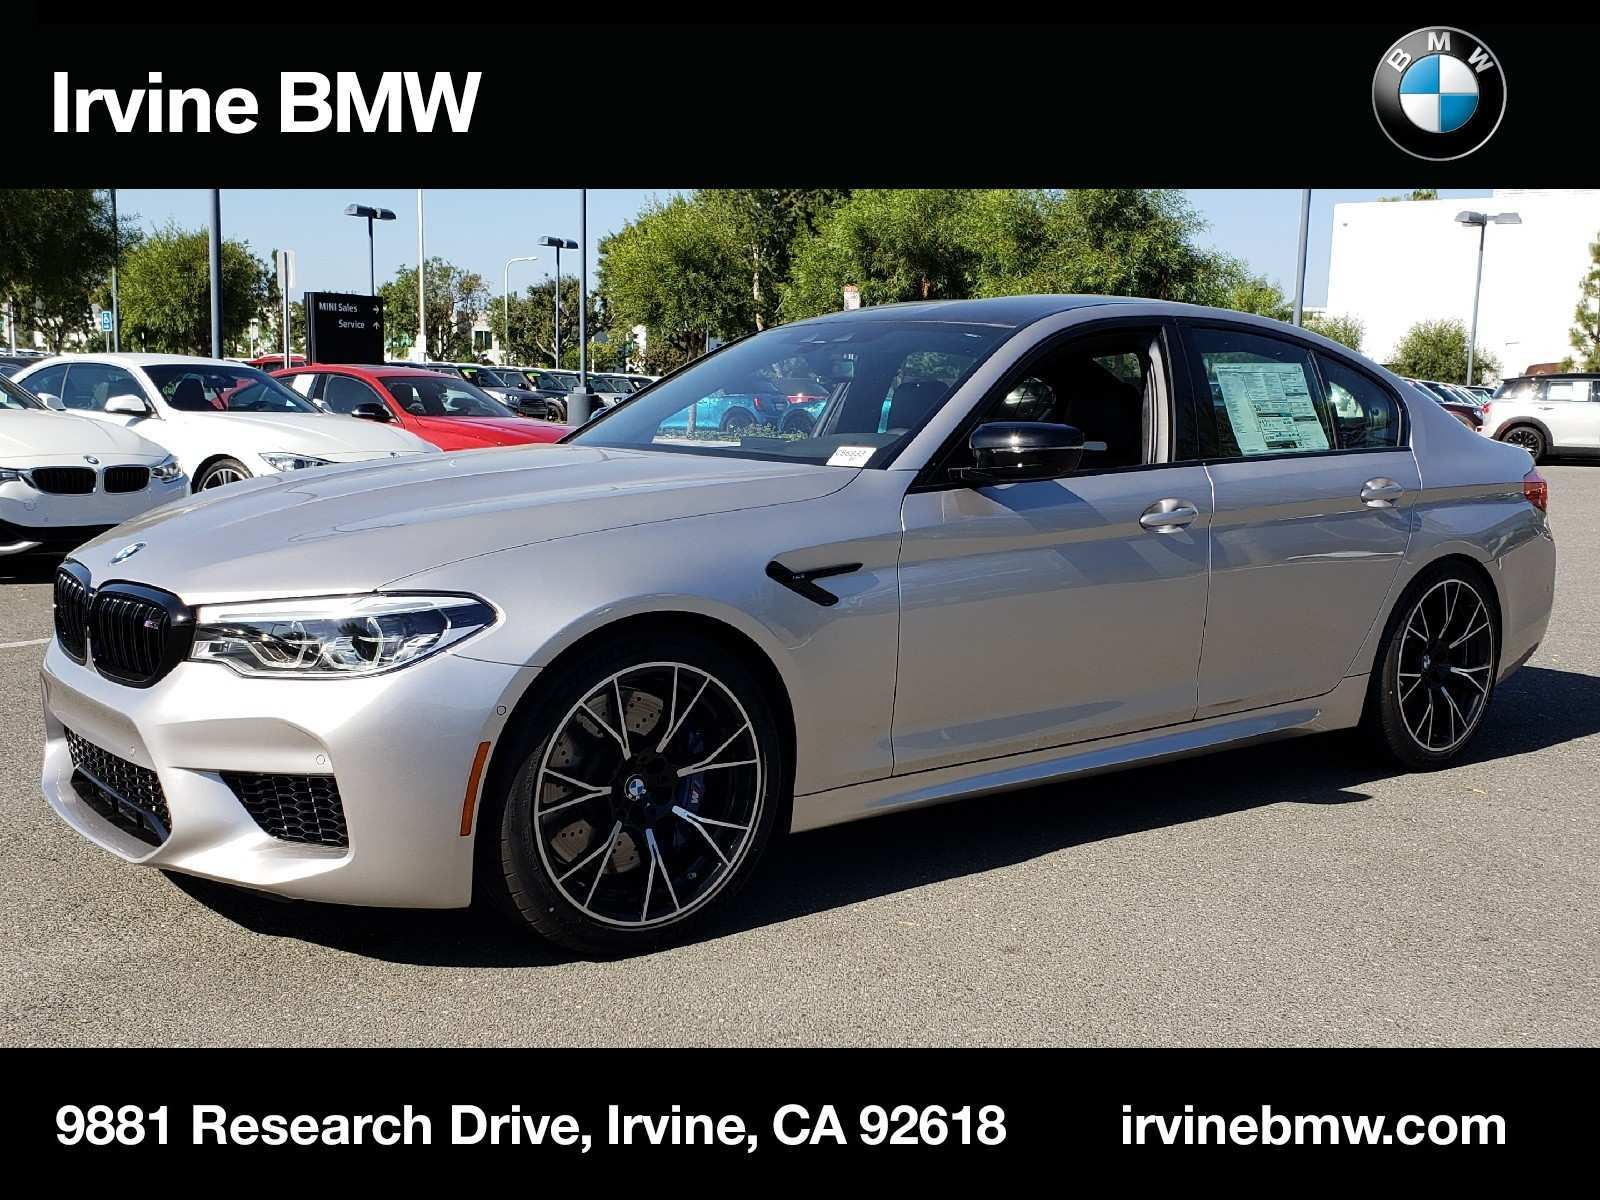 61 New 2019 Bmw For Sale Concept by 2019 Bmw For Sale